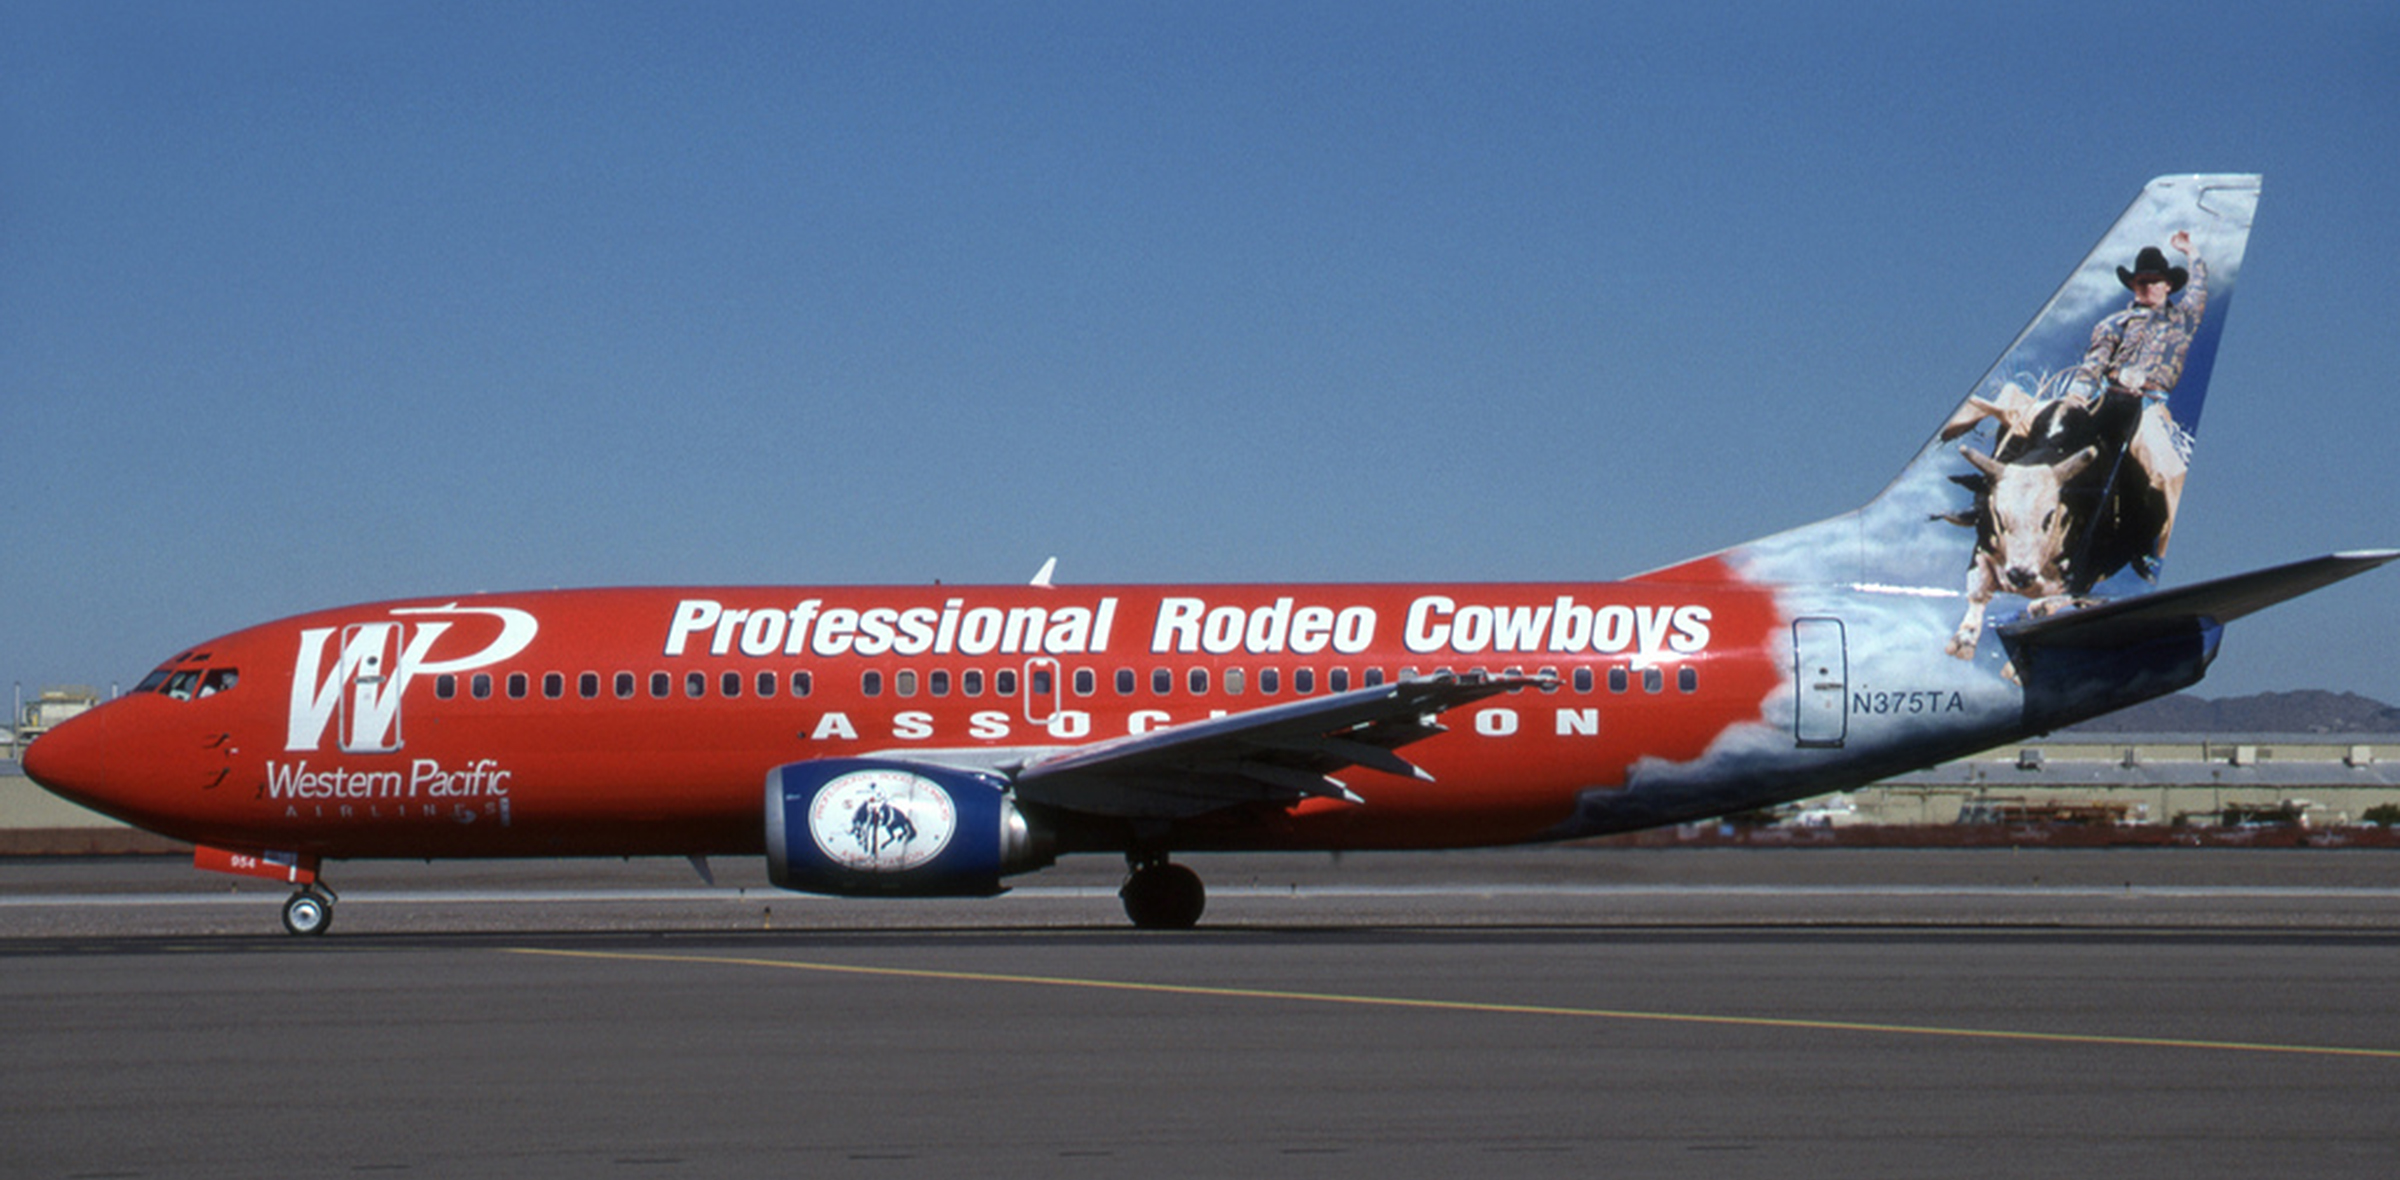 Professional Rodeo Cowboy's Association aircraft graphic design and project management.